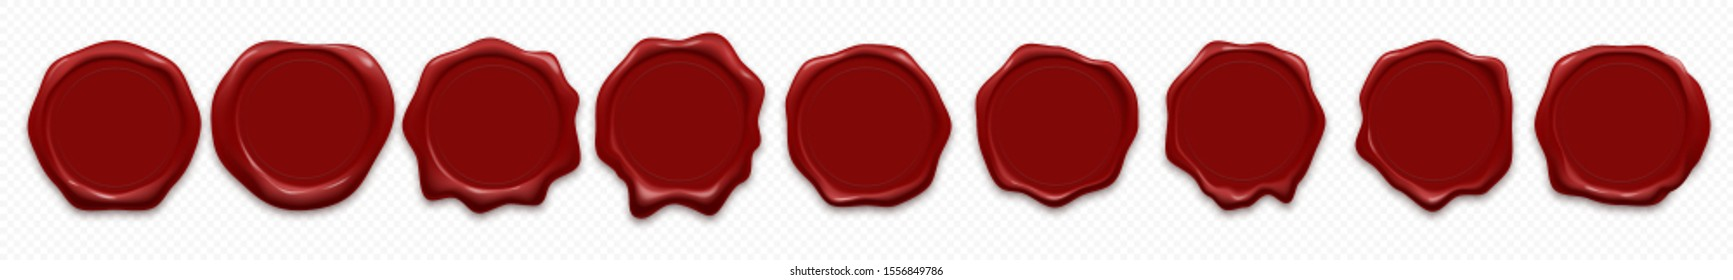 Wax stamp seals, vector 3d realistic icons. Rubber red wax seal stamps templates for quality certificate and premium guarantee product design